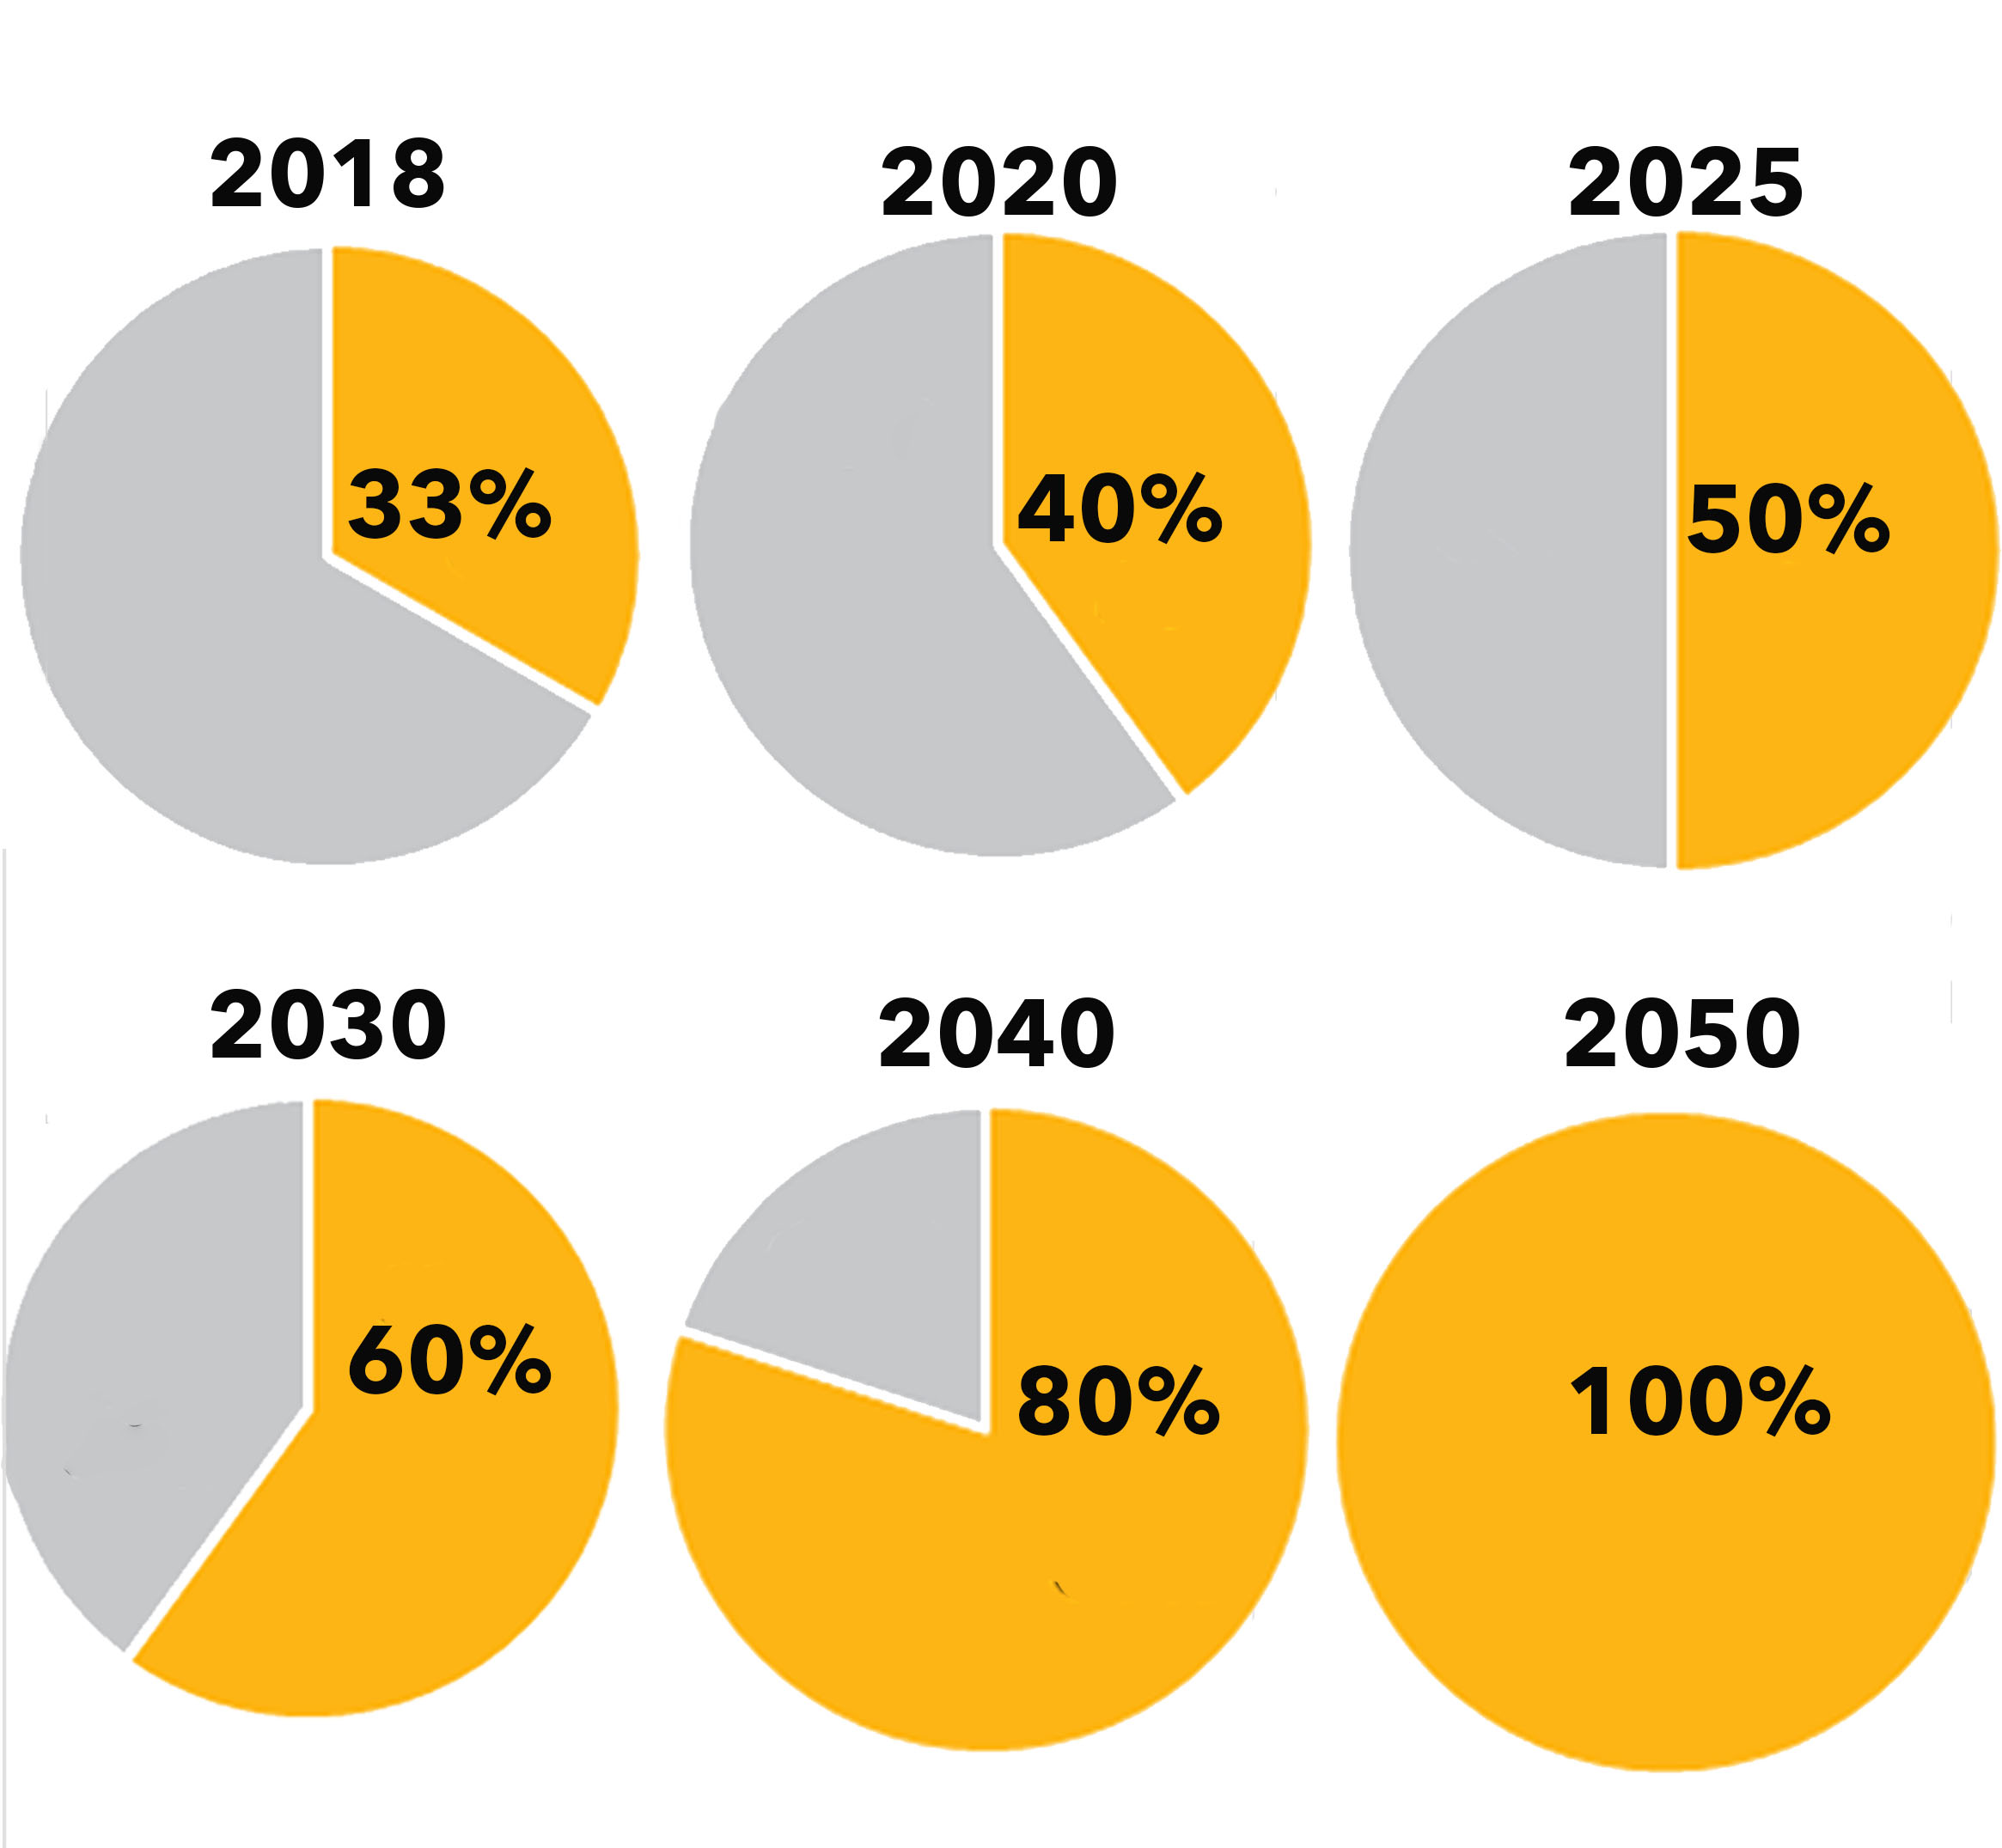 UMBC's renewable energy time line increase by 10% every 5 years until 2050 (100%)